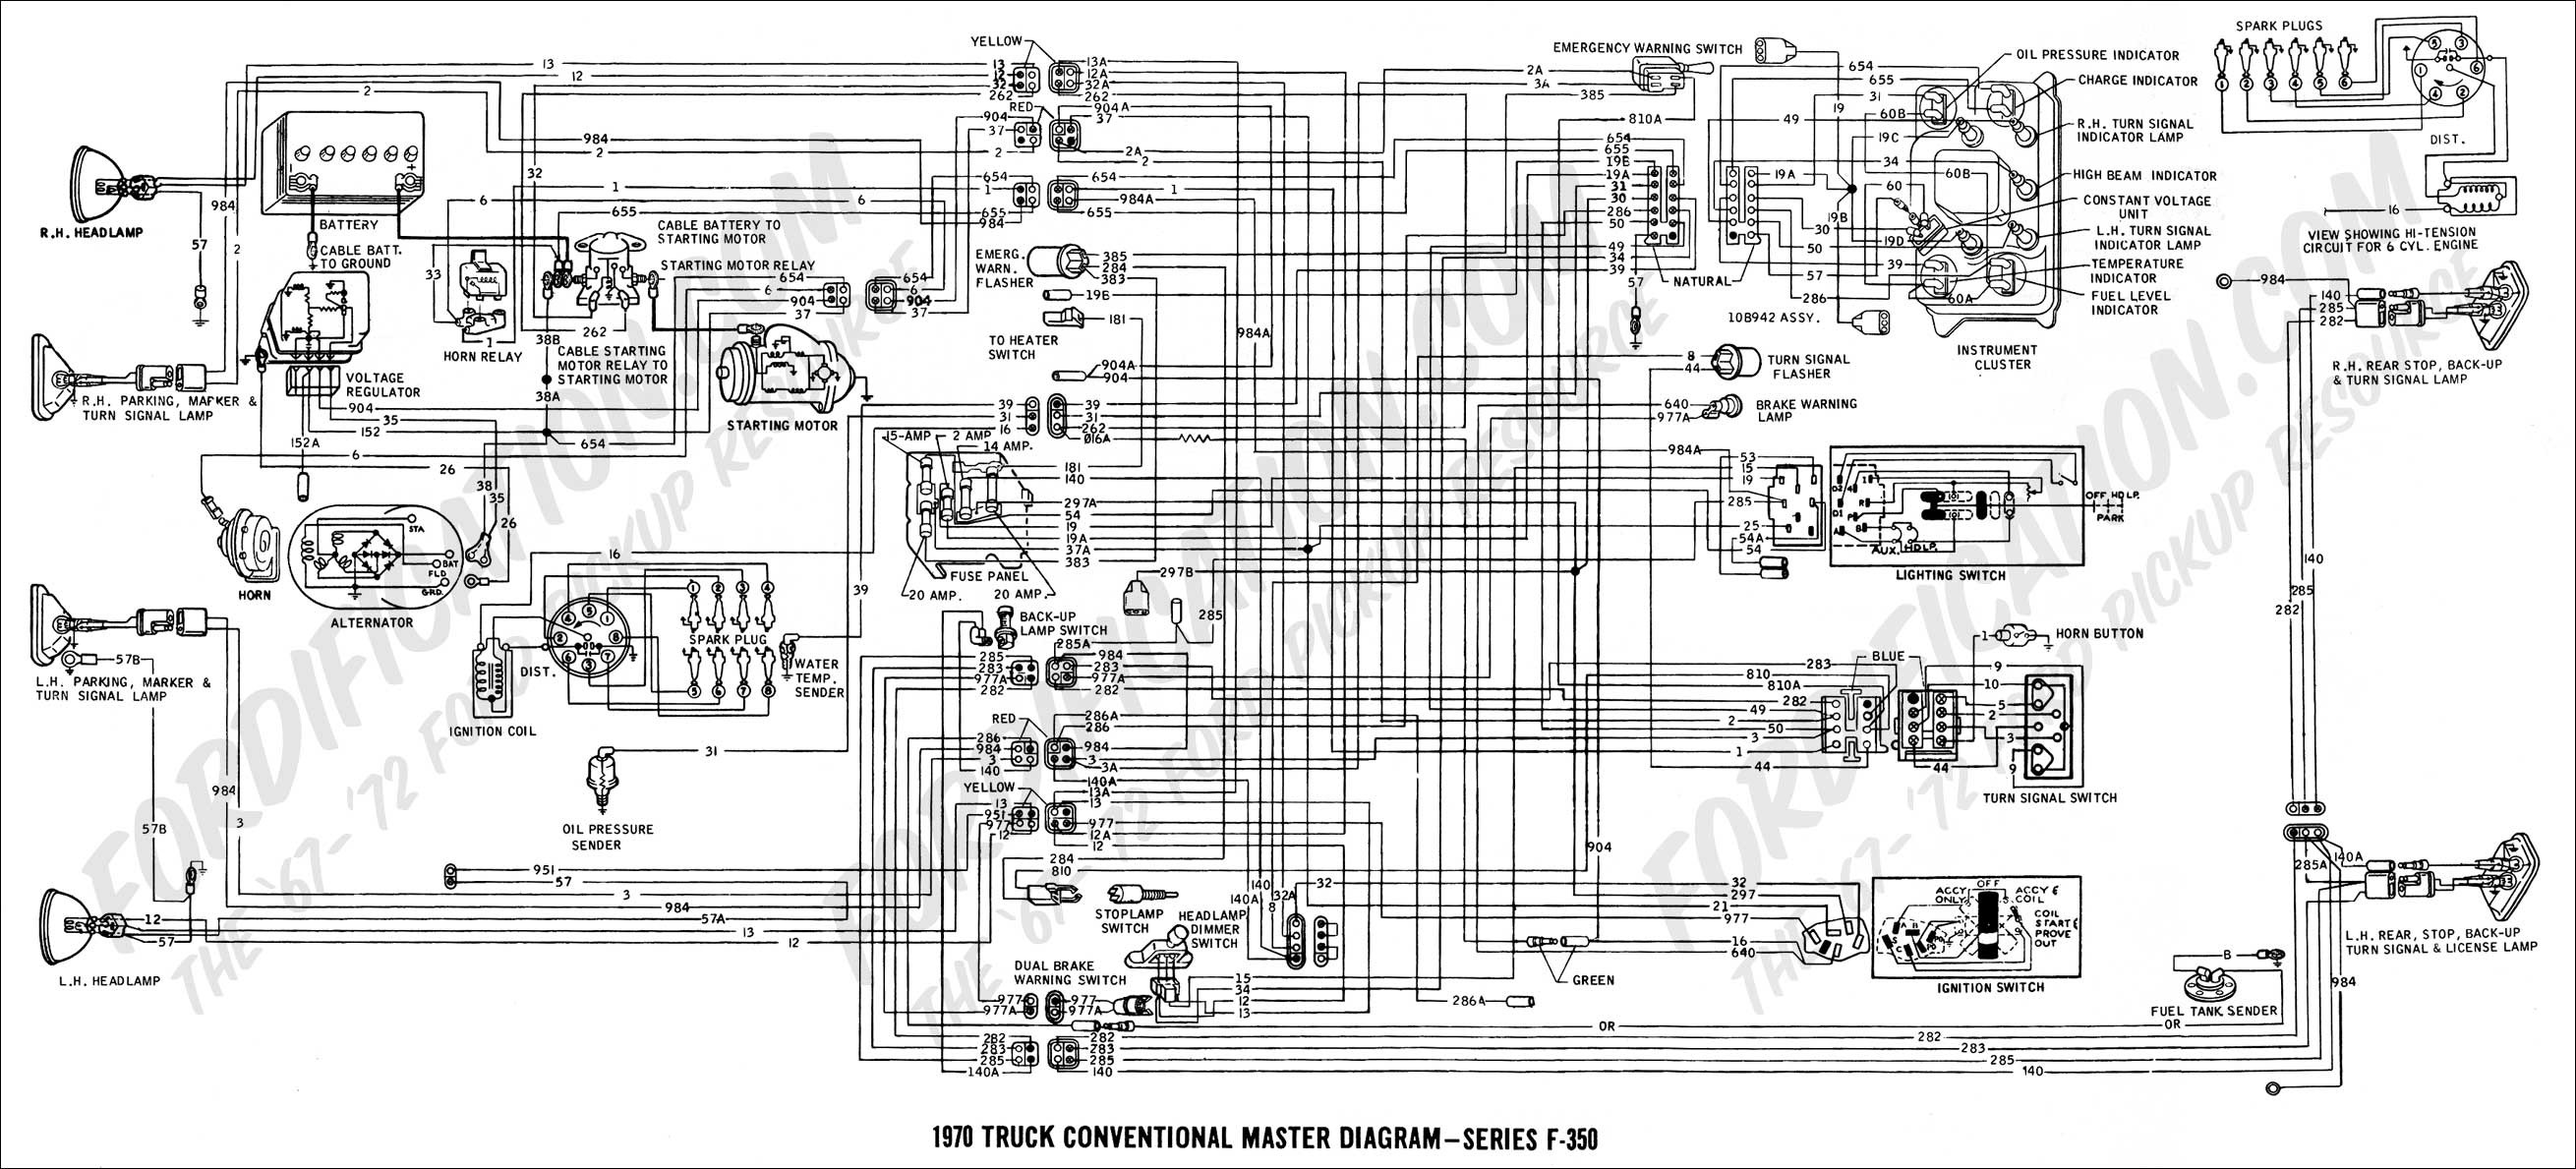 Basic Ignition Wiring Diagram Diagram as Well ford F 350 Wiring Diagram In Addition ford Headlight Of Basic Ignition Wiring Diagram